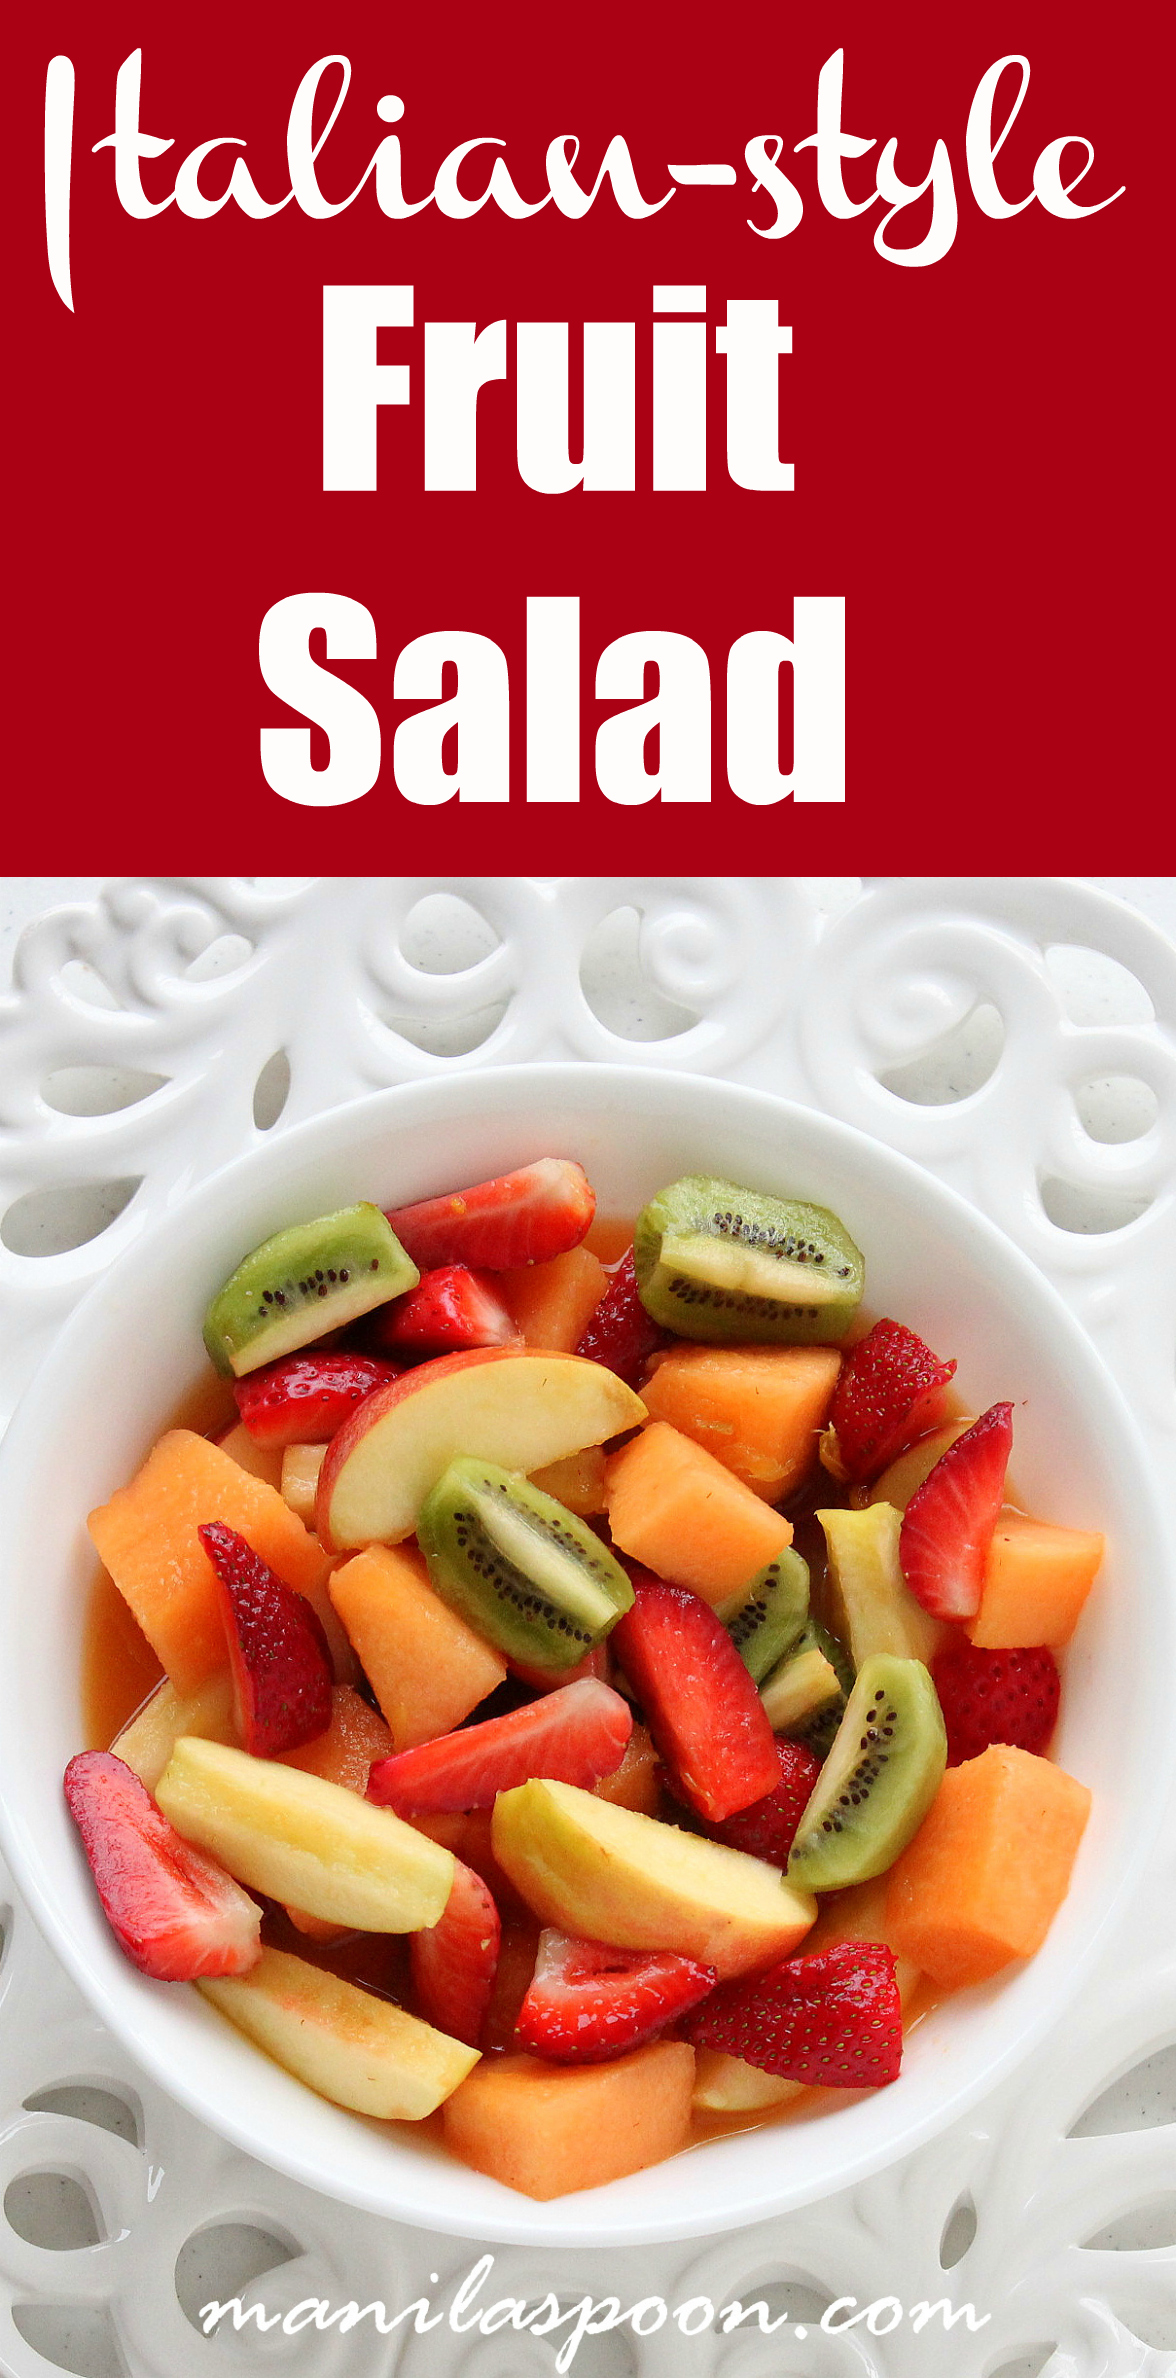 This light and healthy Italian fruit salad is the delicious way to take in all that nutrients from your favorite fruits and berries. So refreshingly good, it's the perfect summer treat! #italian #fruit #salad